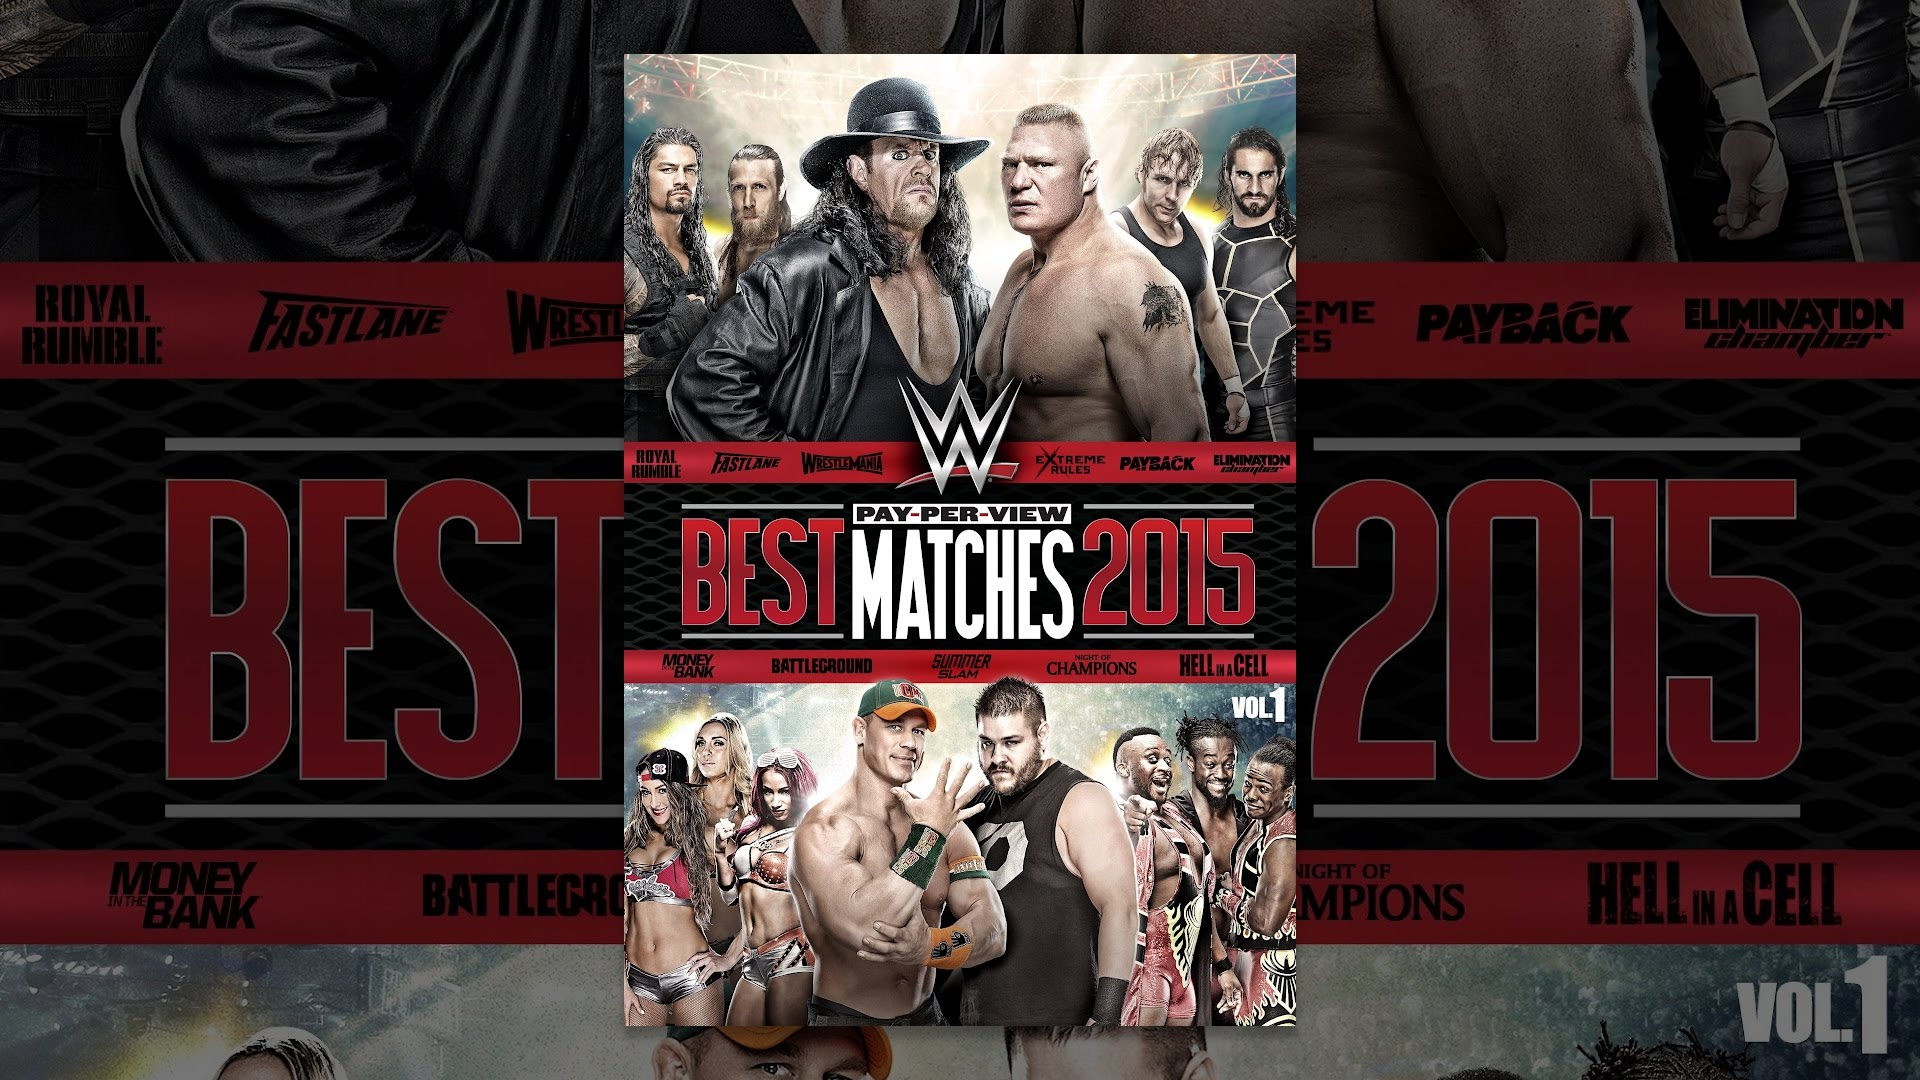 WWE: Best Pay-Per-View Matches of 2015 Volume 1